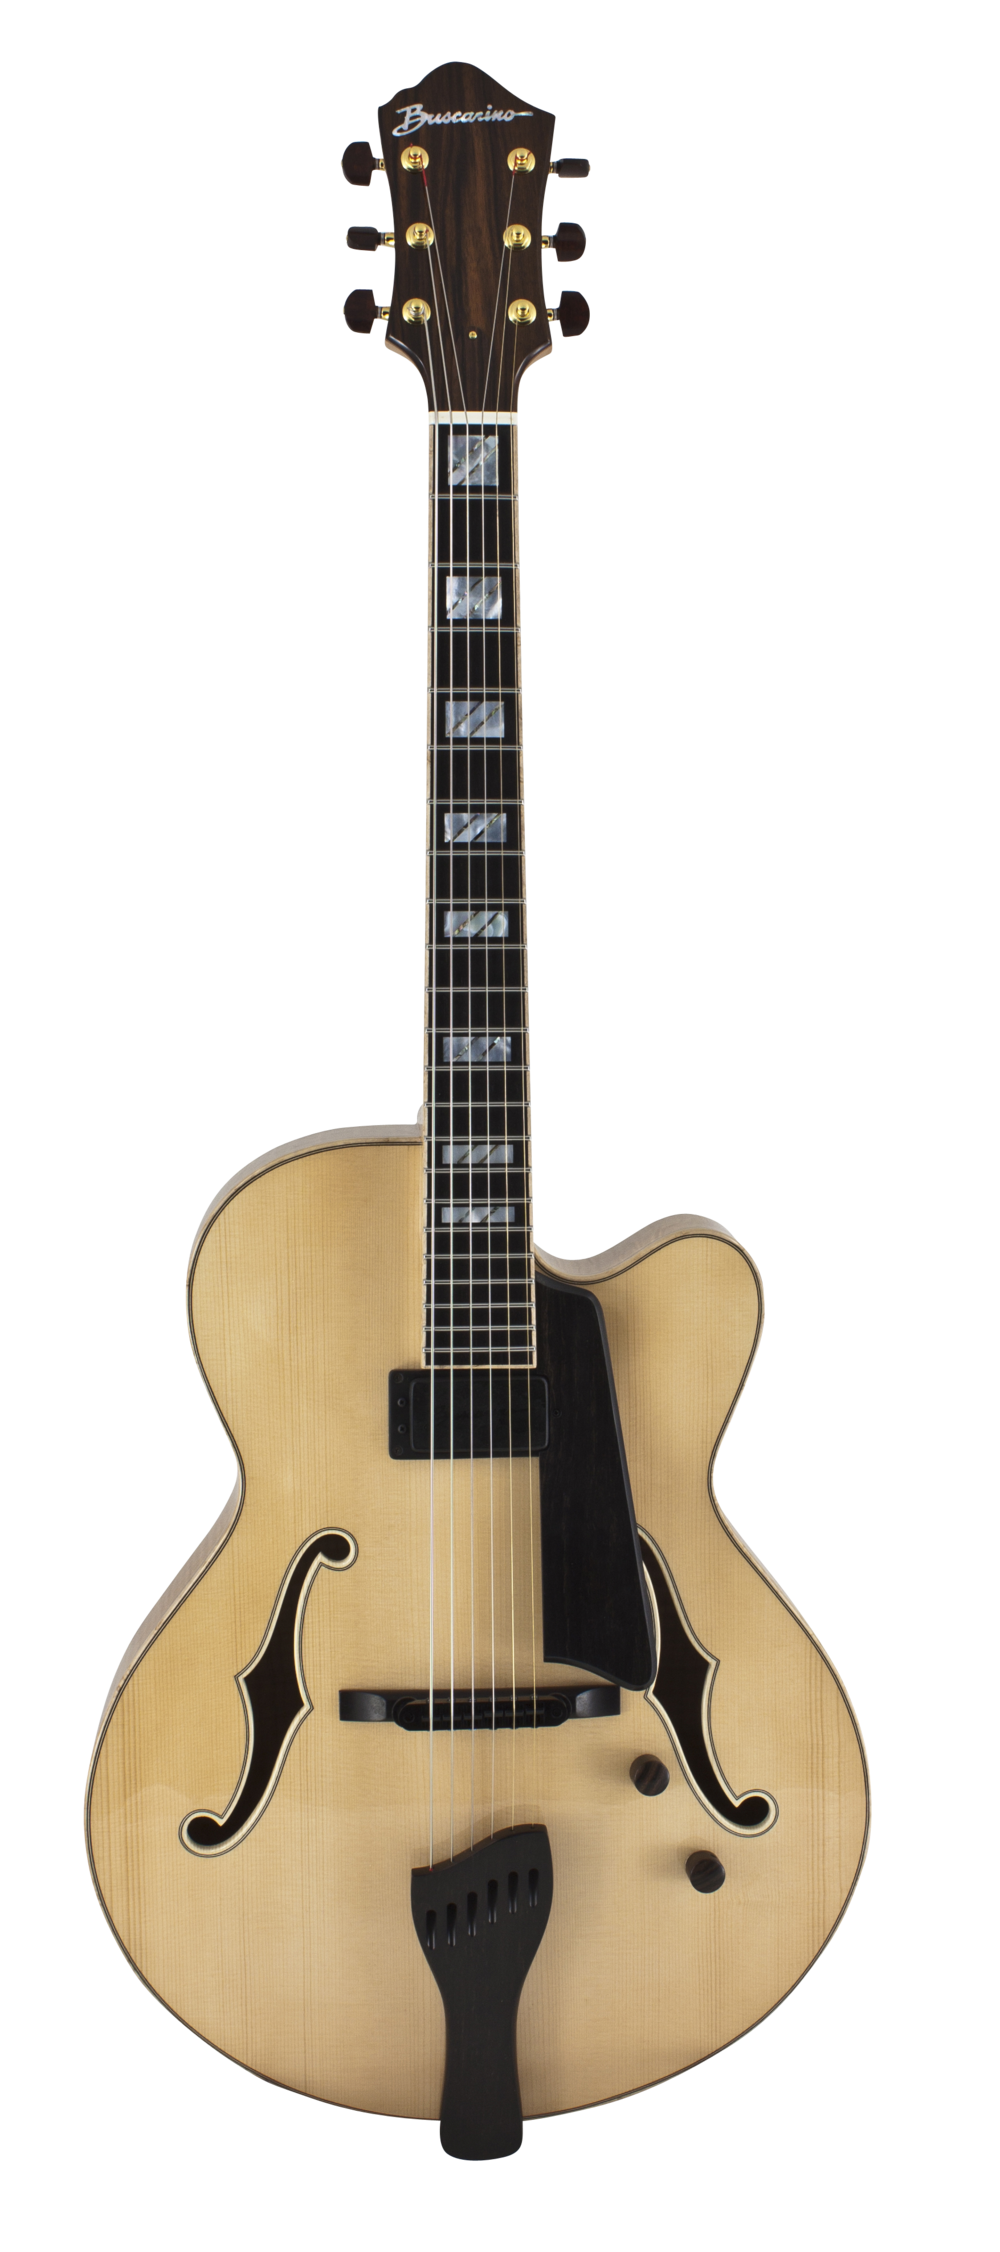 The Prodigy Archtop